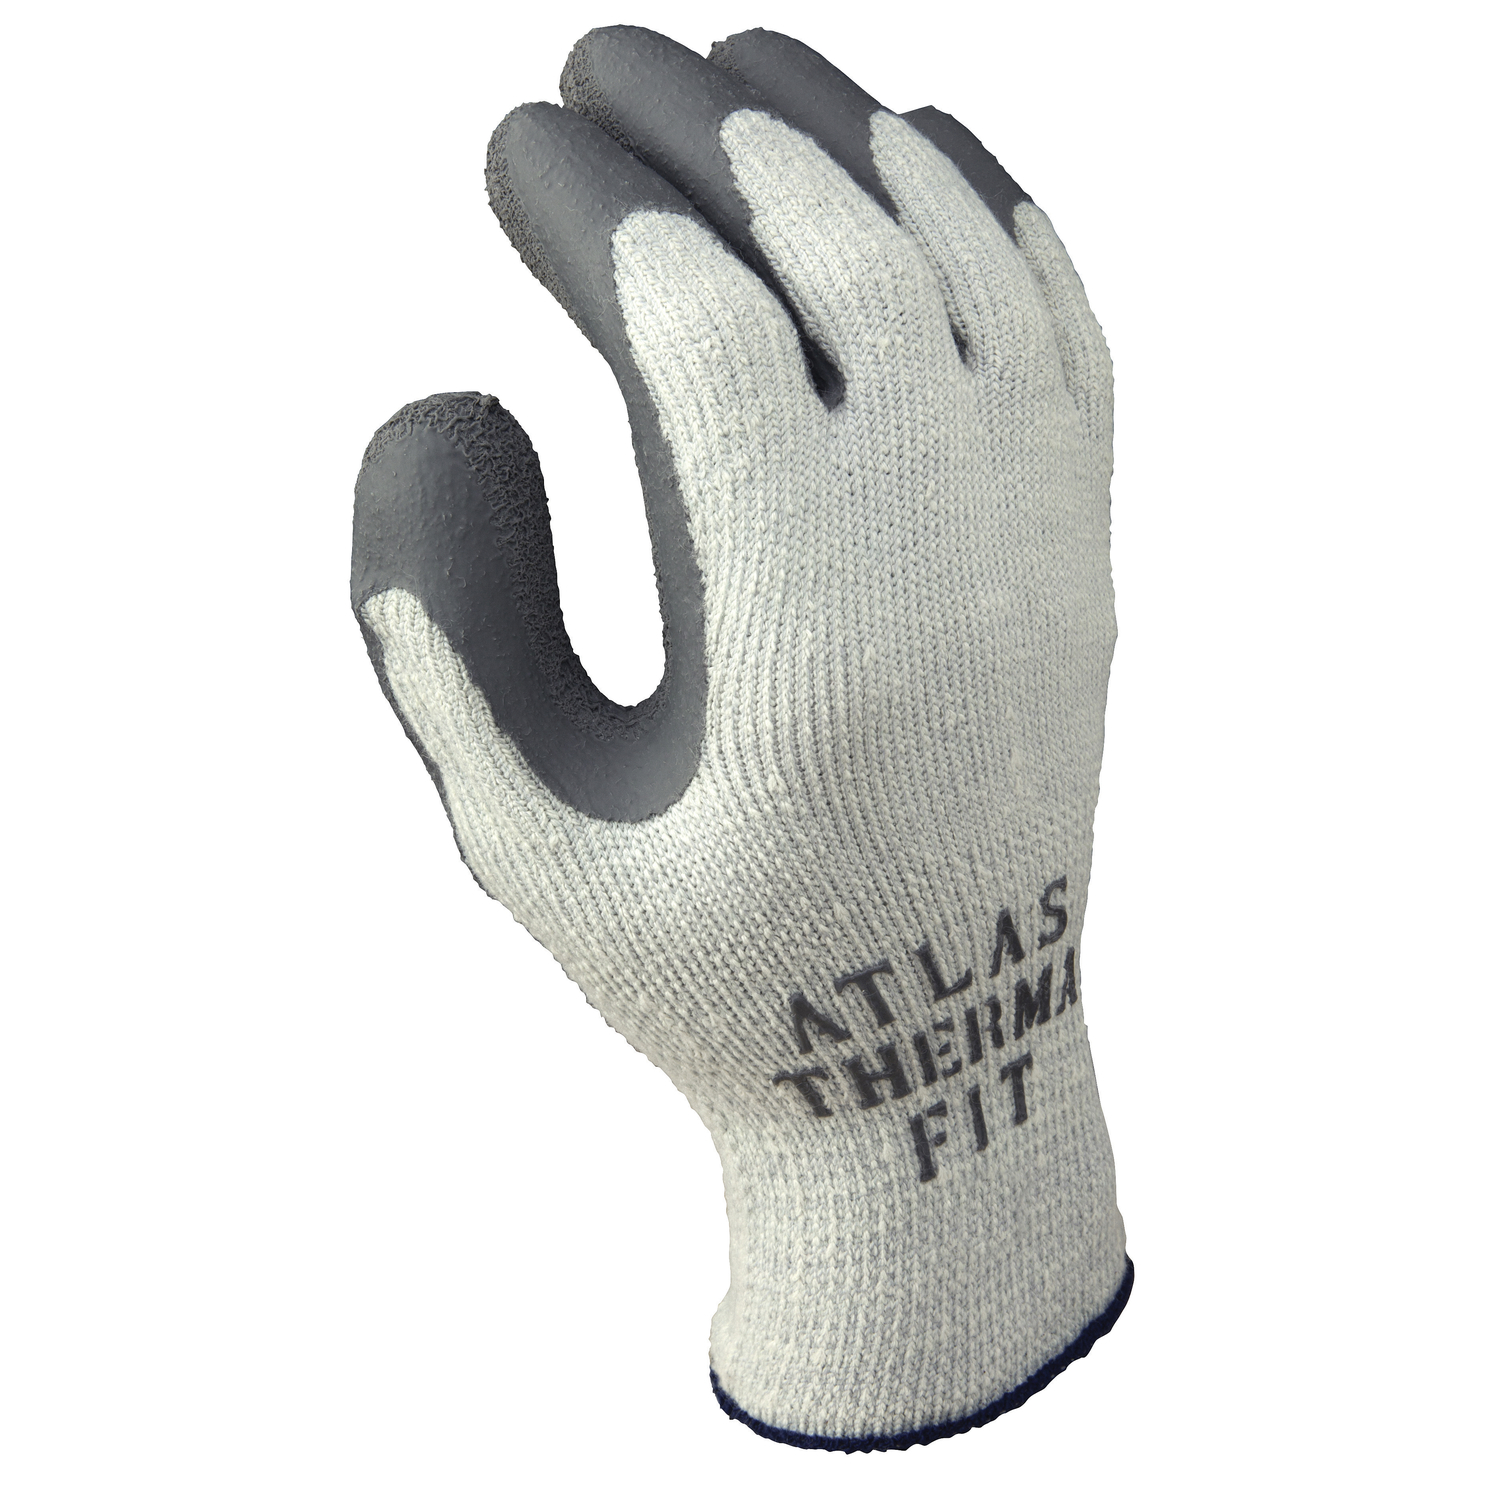 Atlas Therma Fit Unisex Indoor/Outdoor Rubber Latex Cold Weather Work Gloves  ...